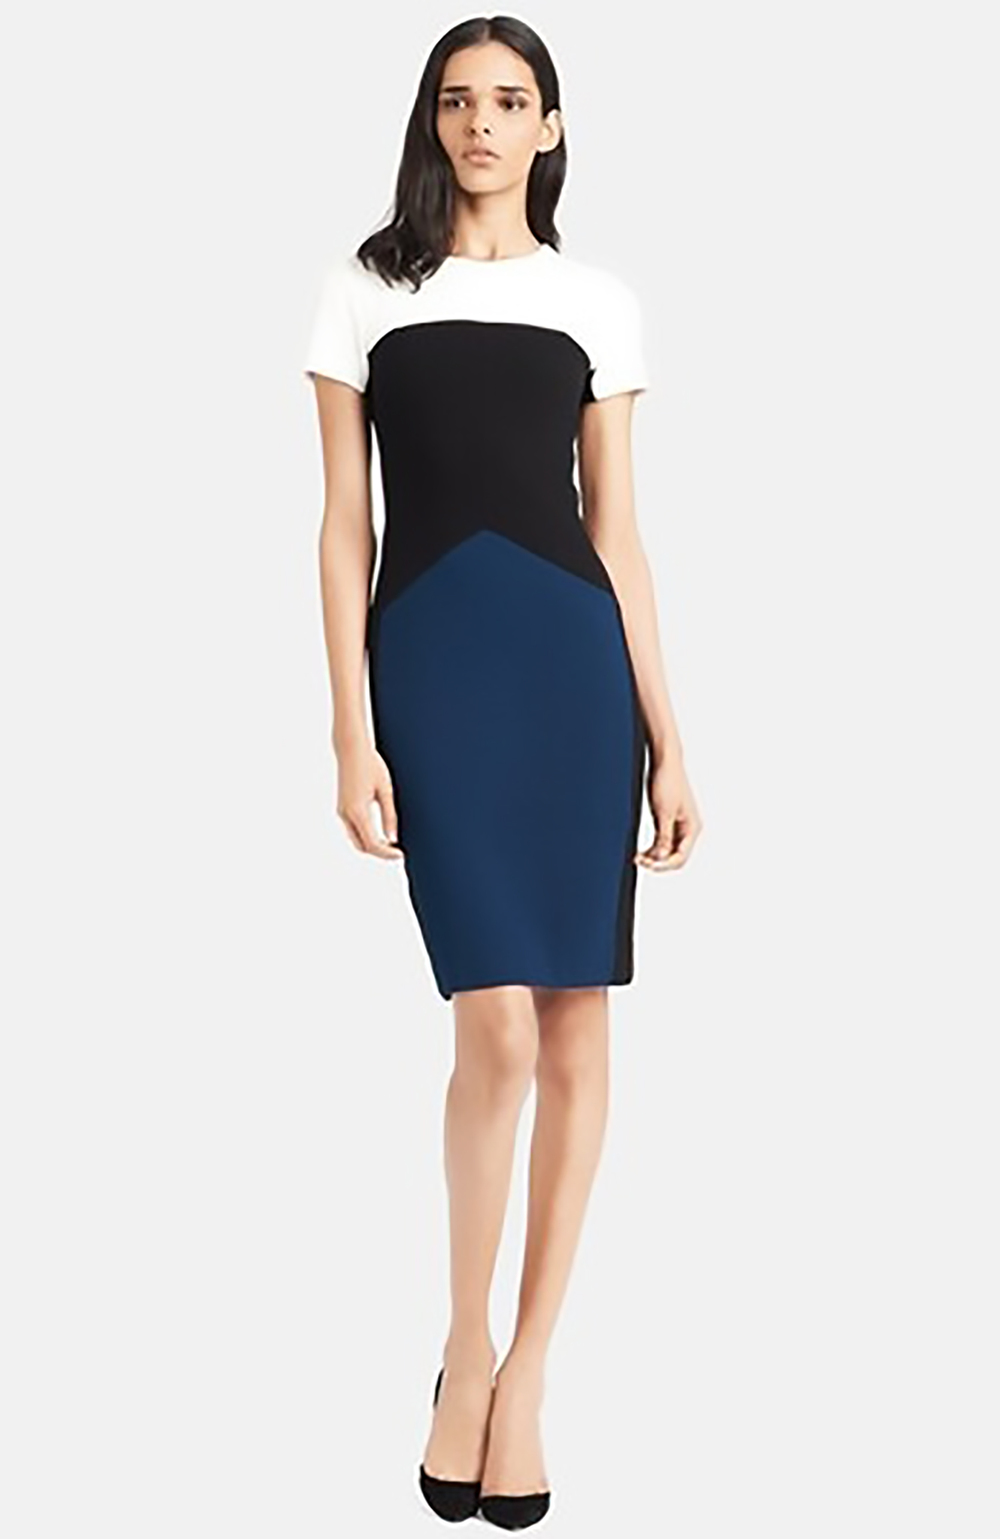 nordstrom narciso rodriguez colorblock stretch pebble crepe dress sheath dress 1500.jpg